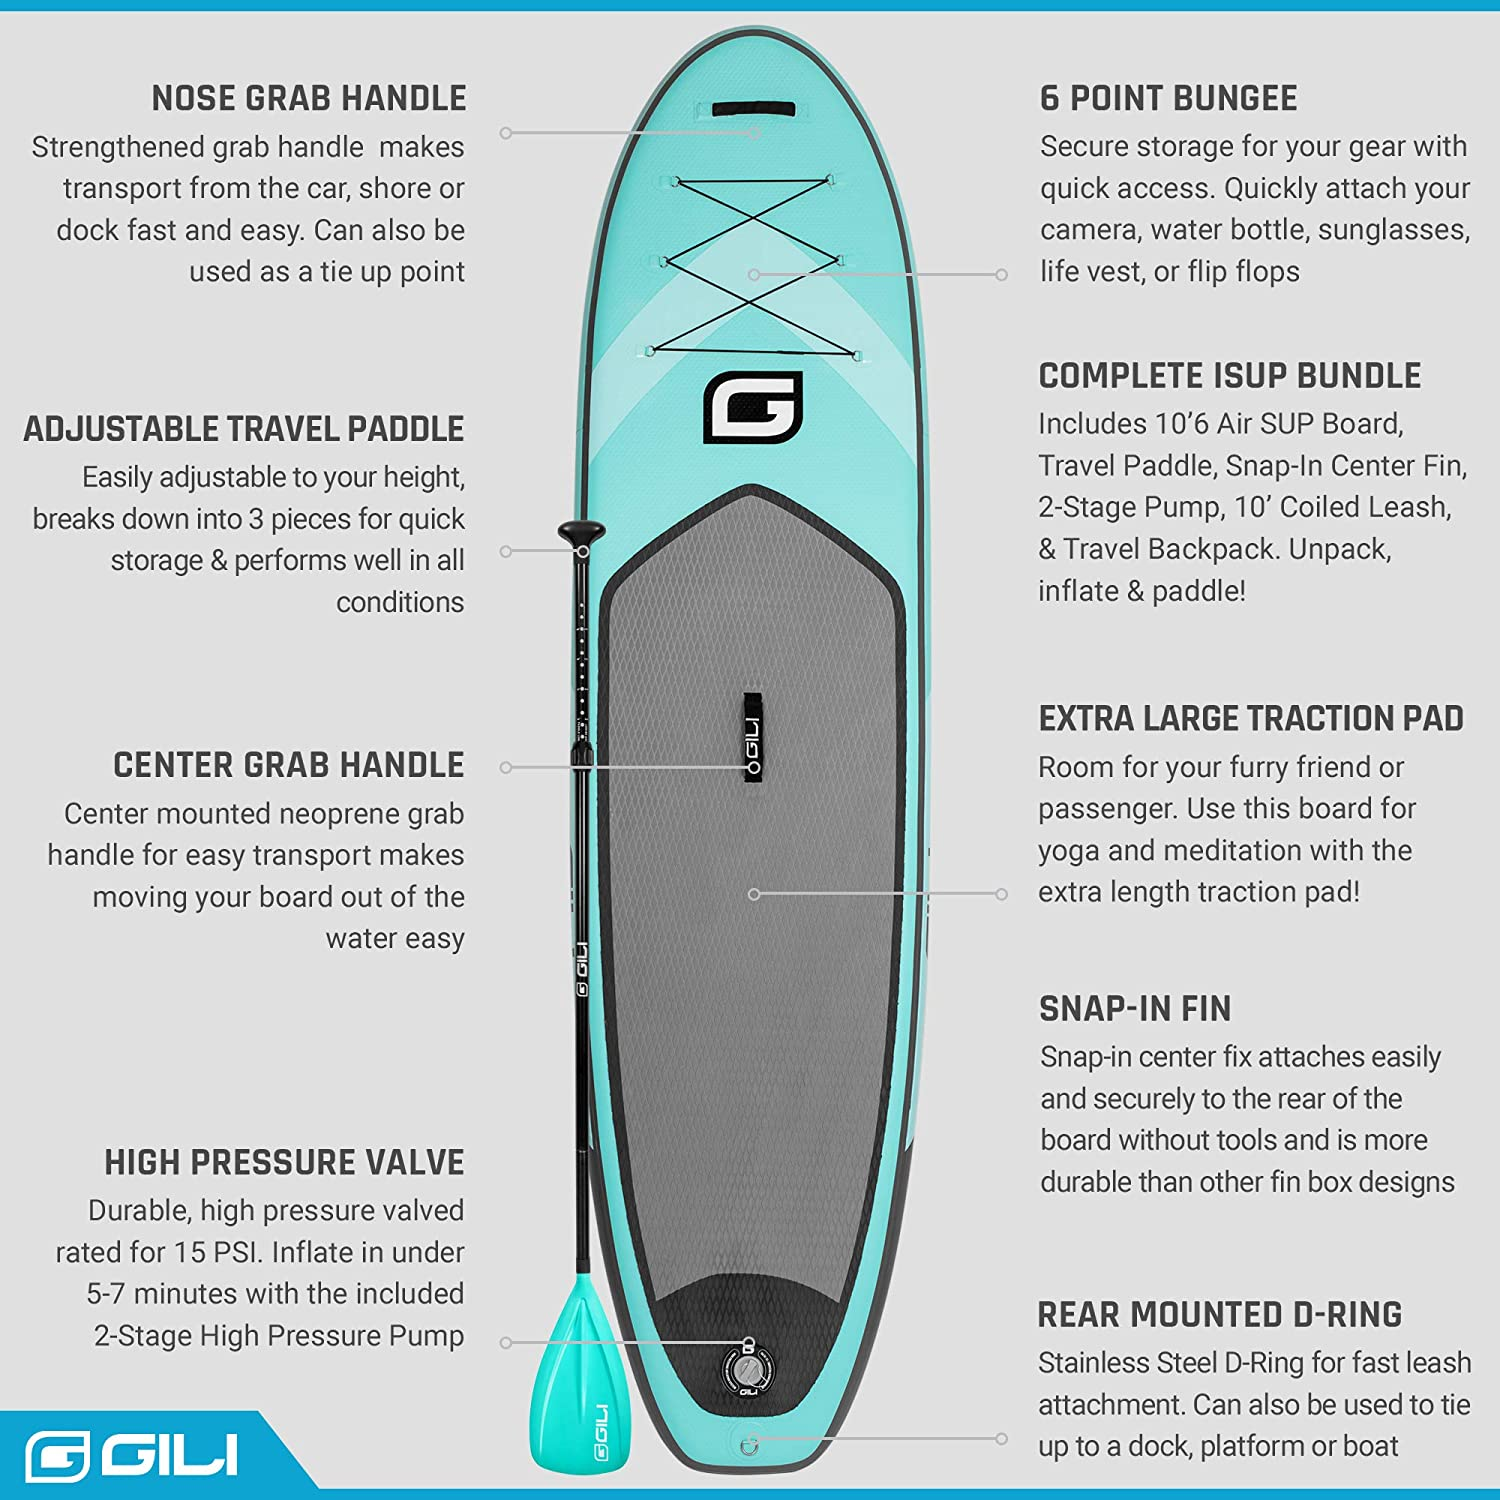 GILI 10 6 Inflatable Stand Up Paddle Board Package 10 6 Long 31 Wide 6 Thick Includes Paddle, Backpack, SUP Coiled Leash Pump